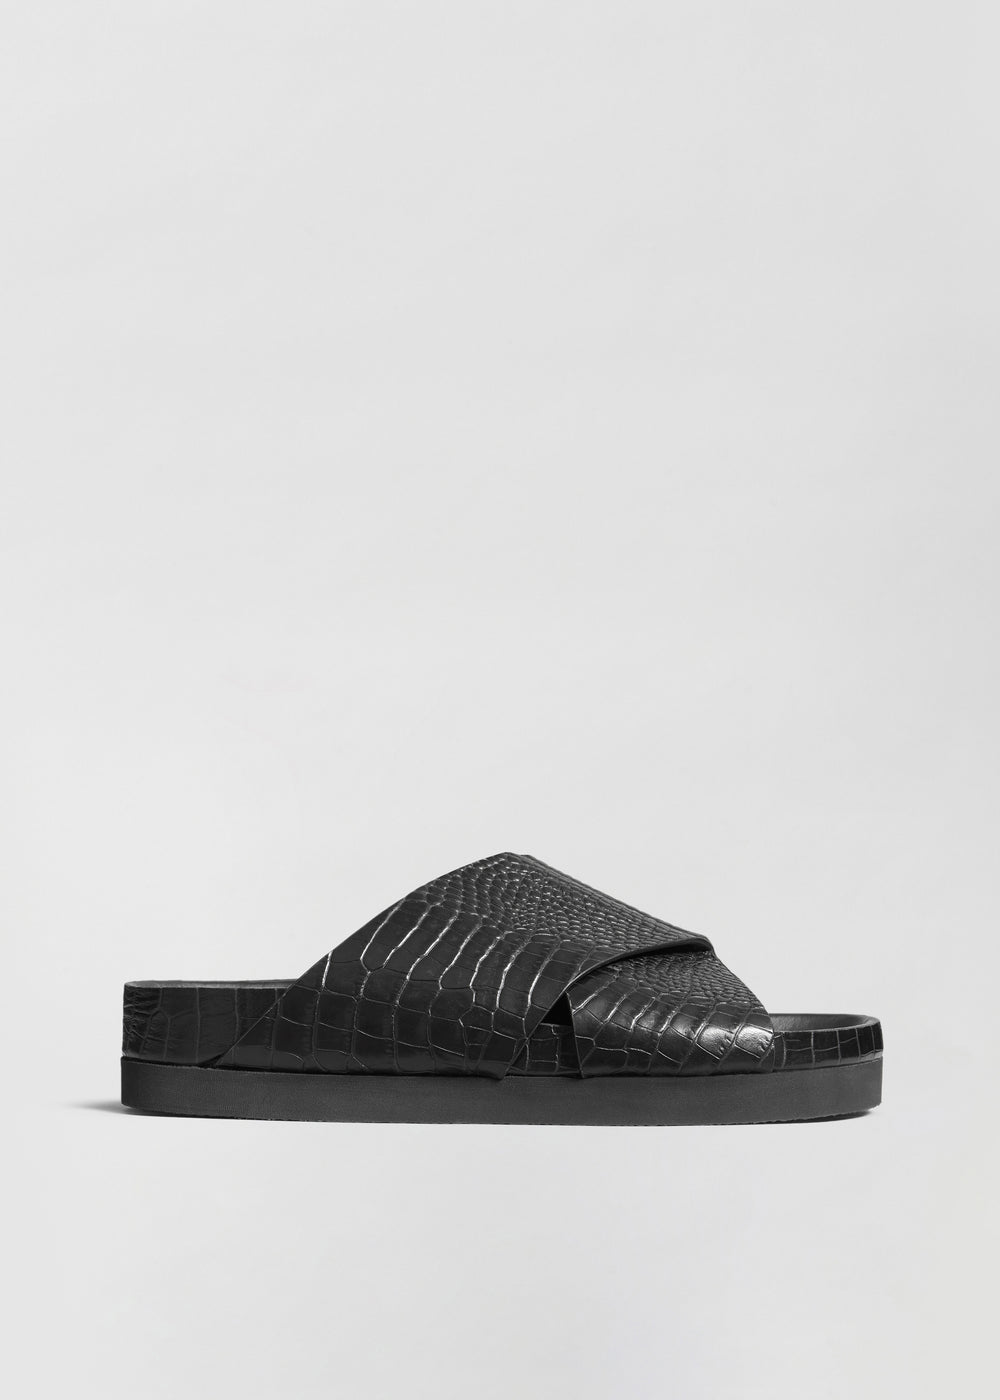 Slide Sandal in Embossed Leather - Black - CO